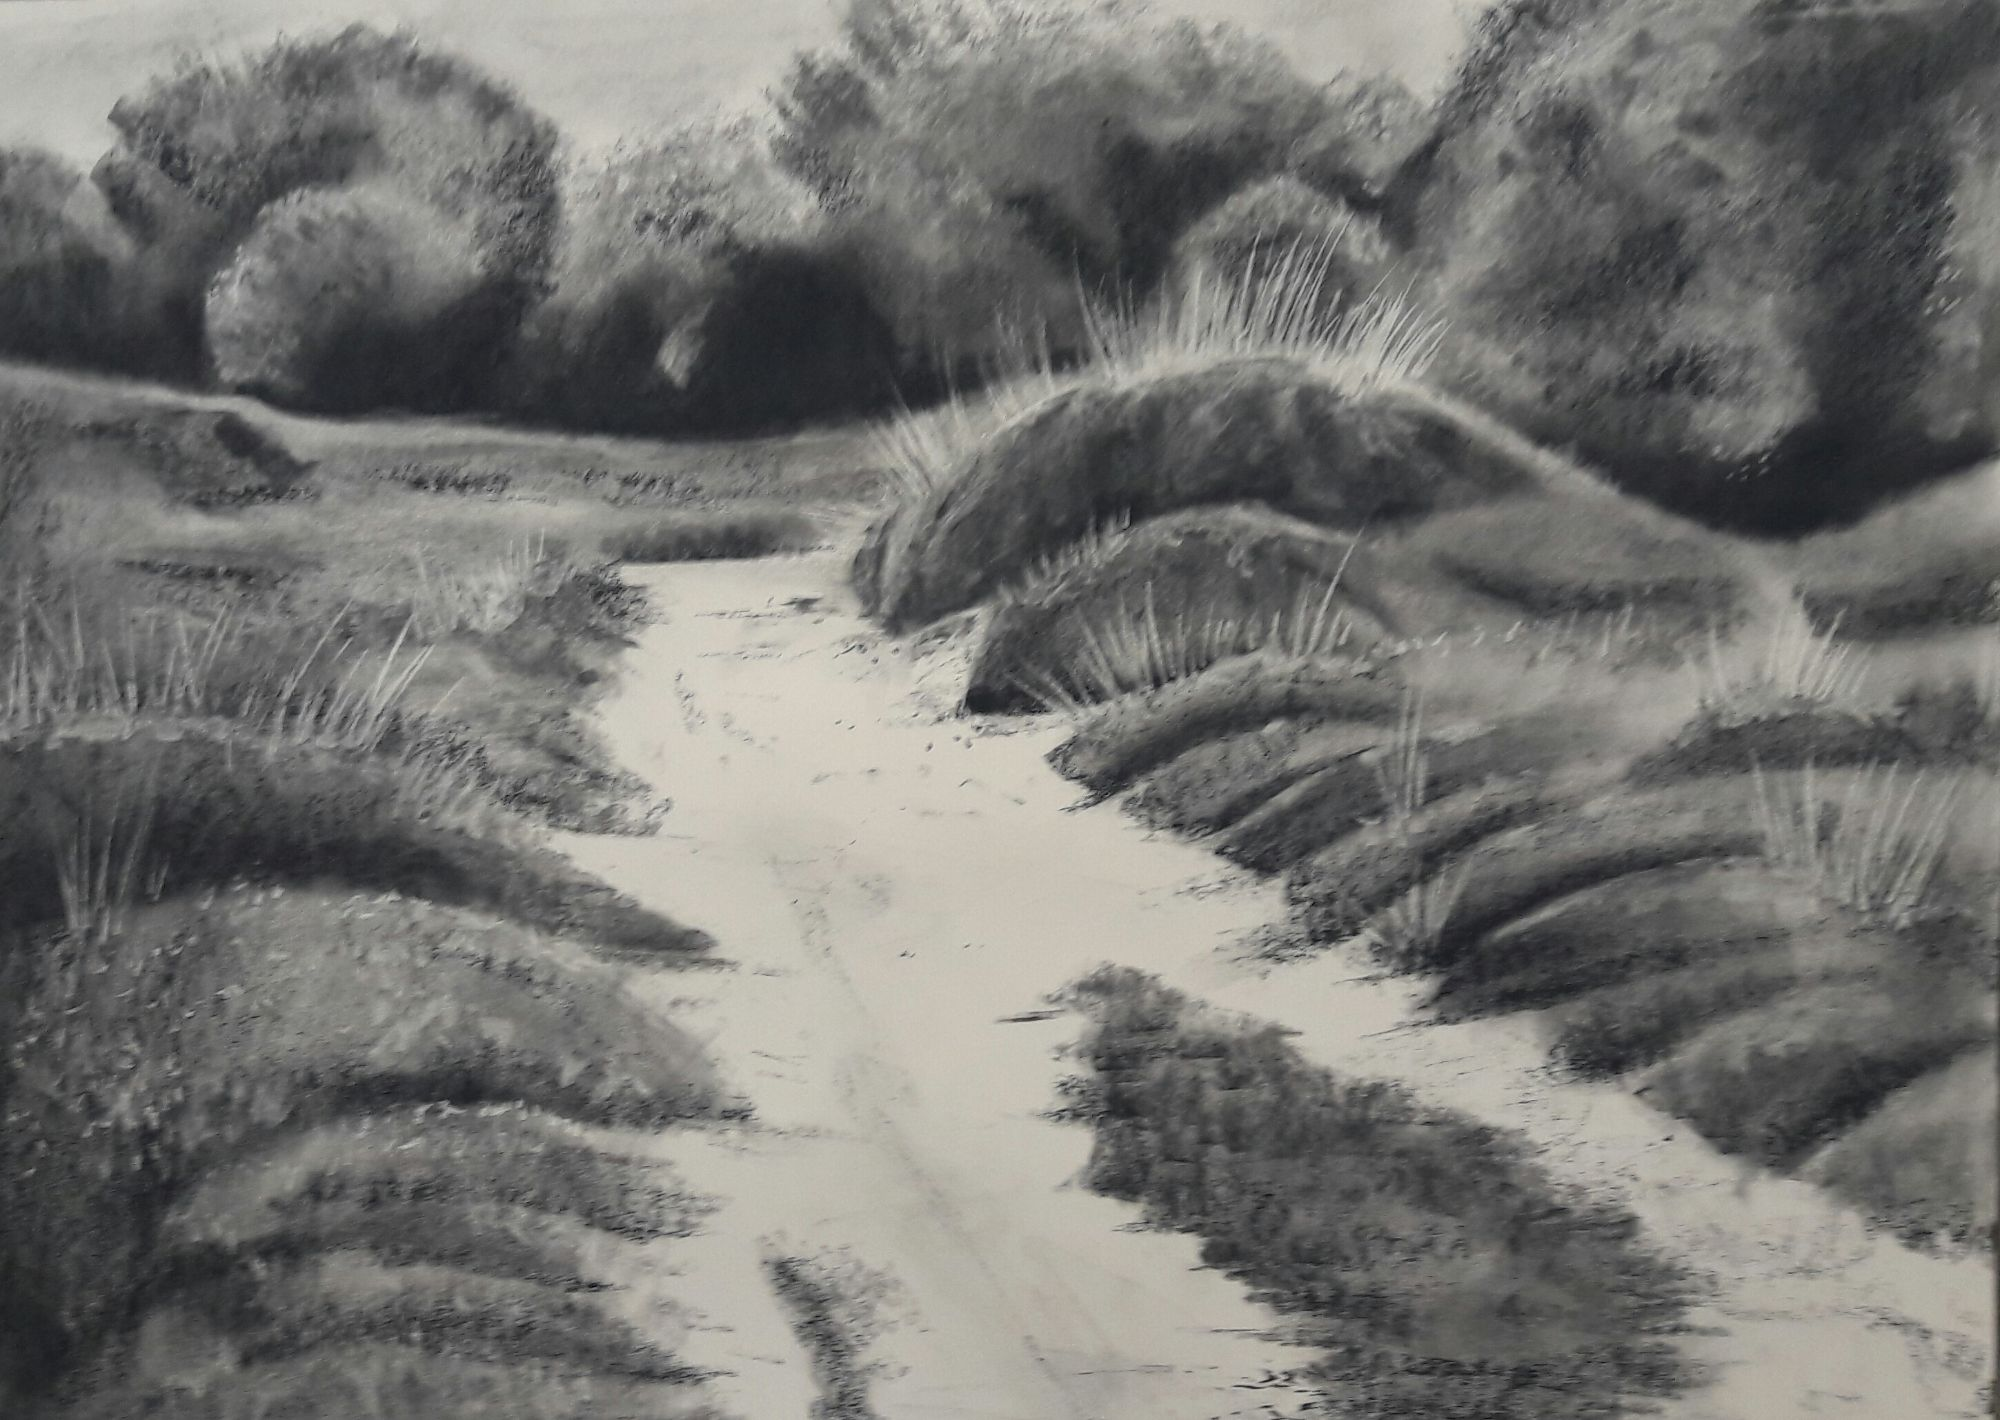 Studland #1 - Charcoal on Surrey cartridge paper (594 x 841 mm)